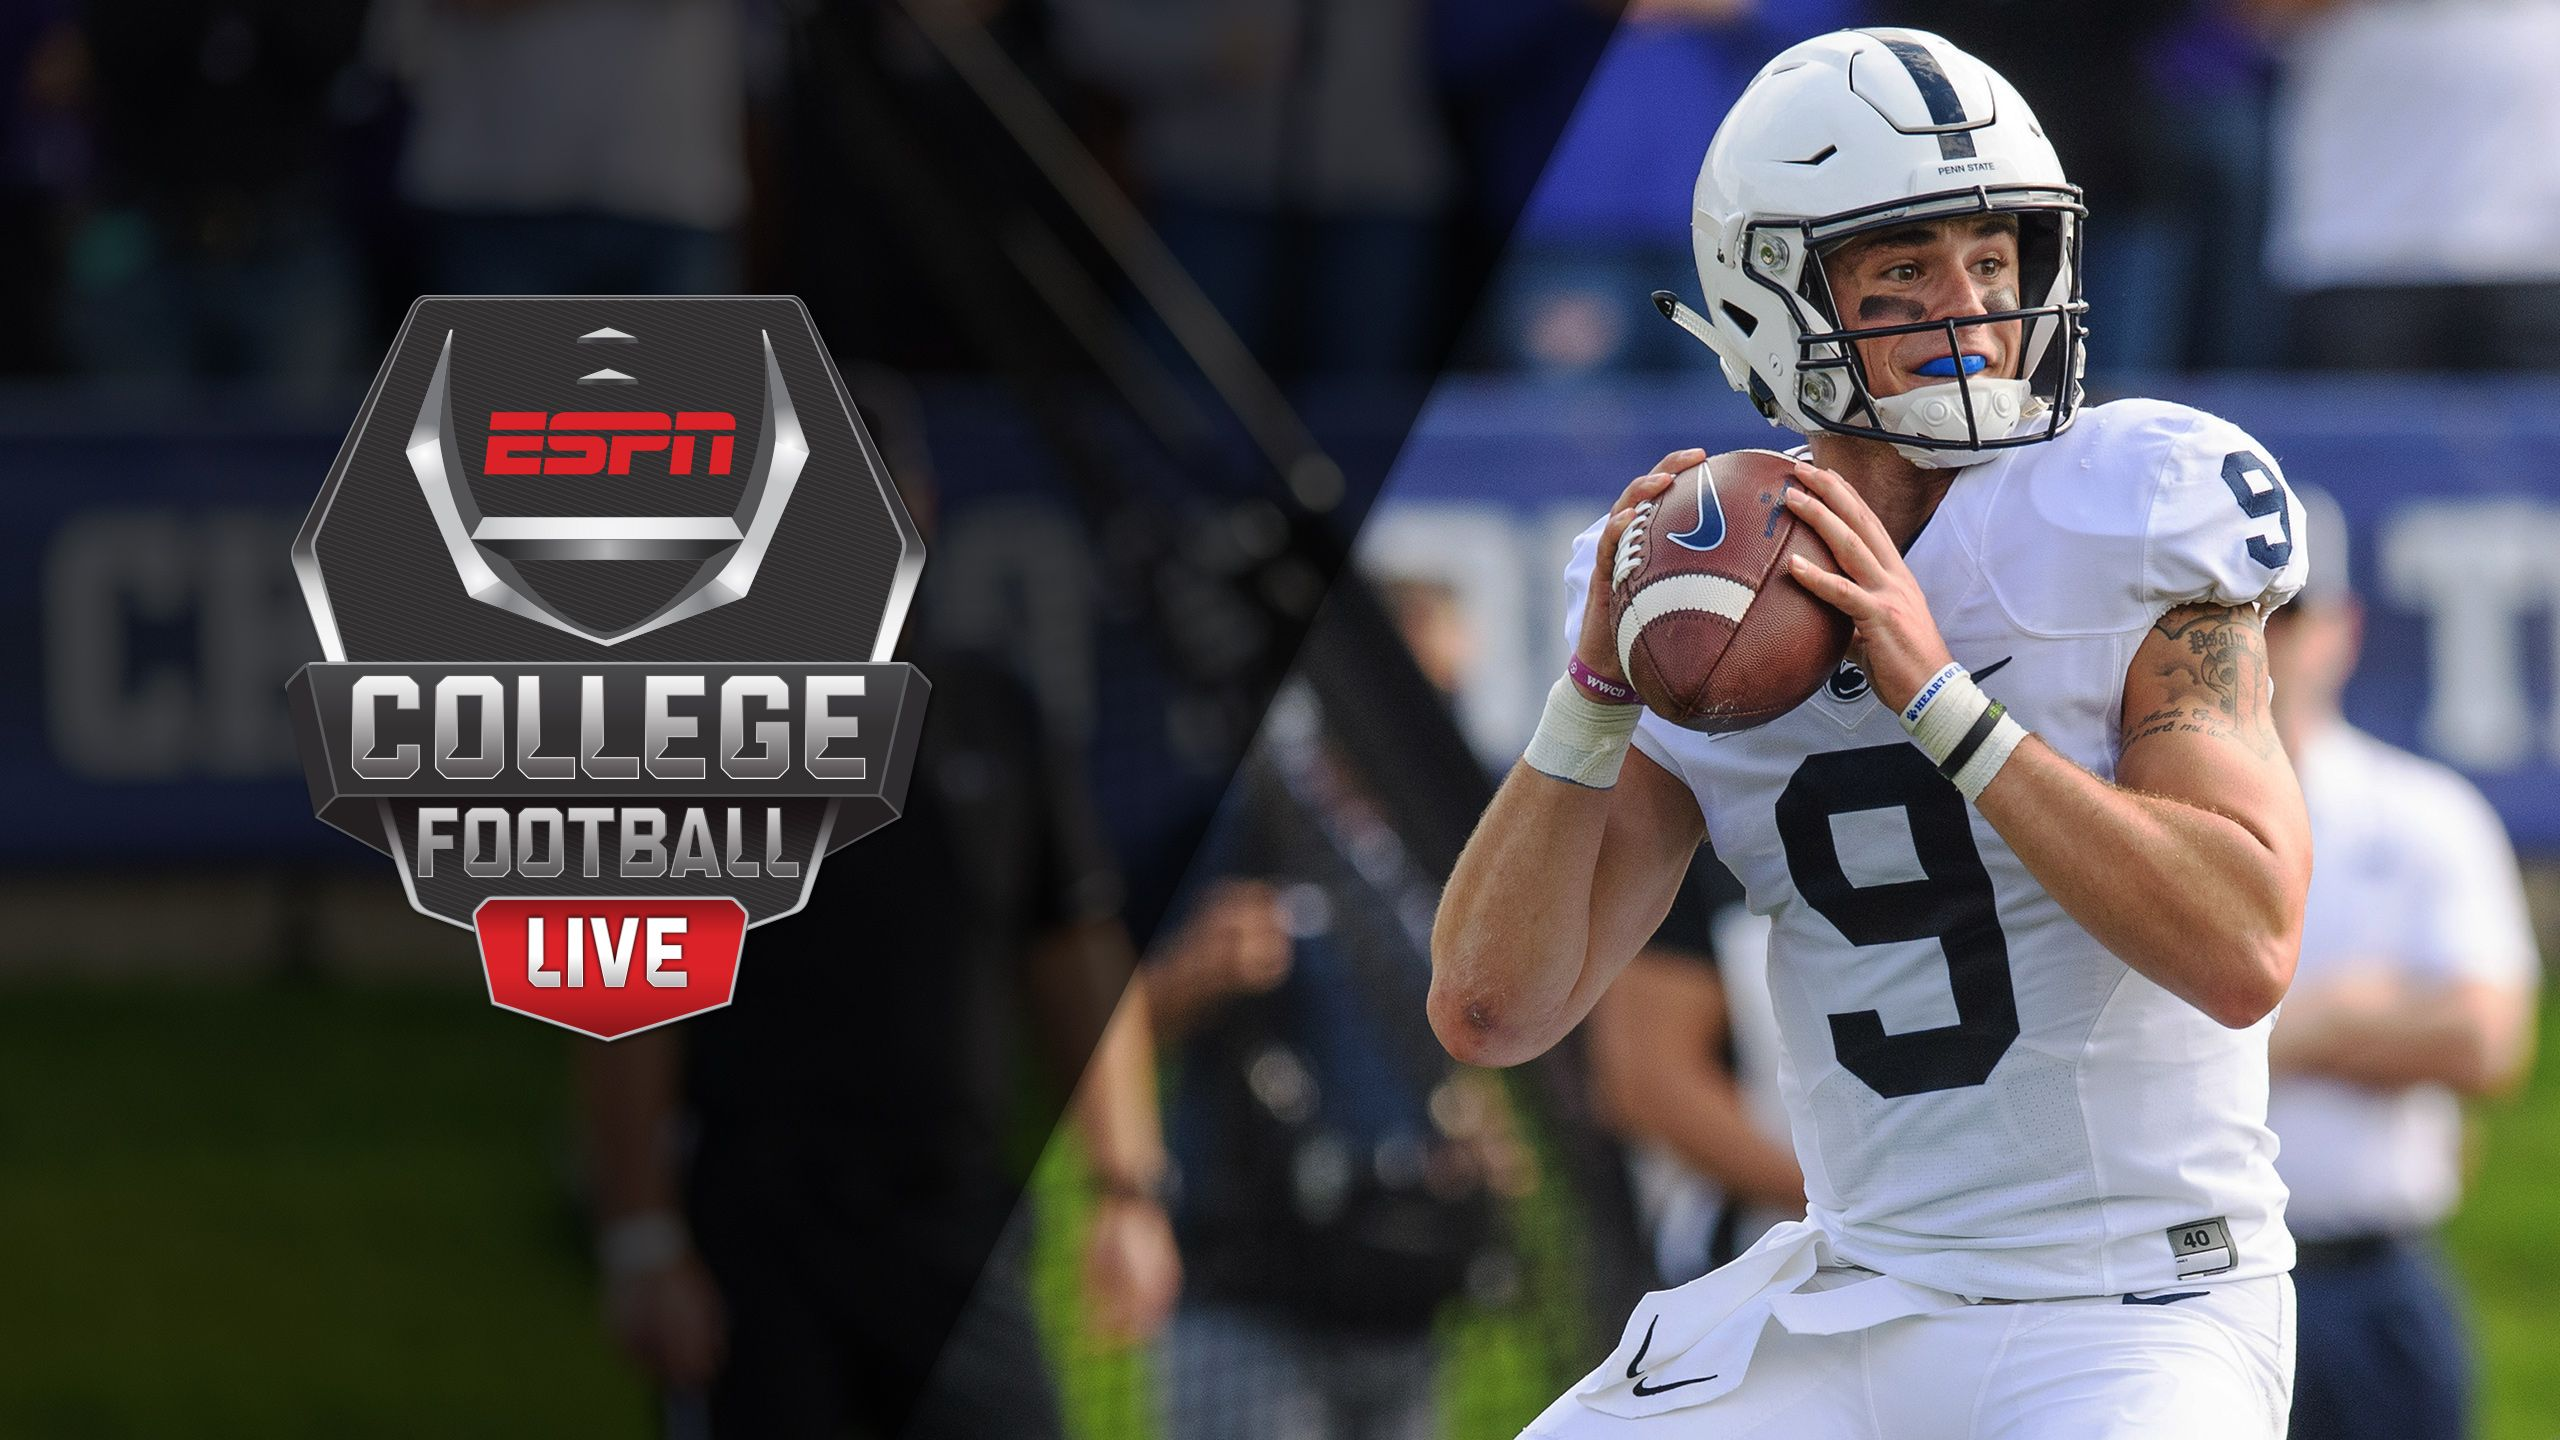 Fri, 10/20 - College Football Live: Weekend Tailgate Presented by Wrangler